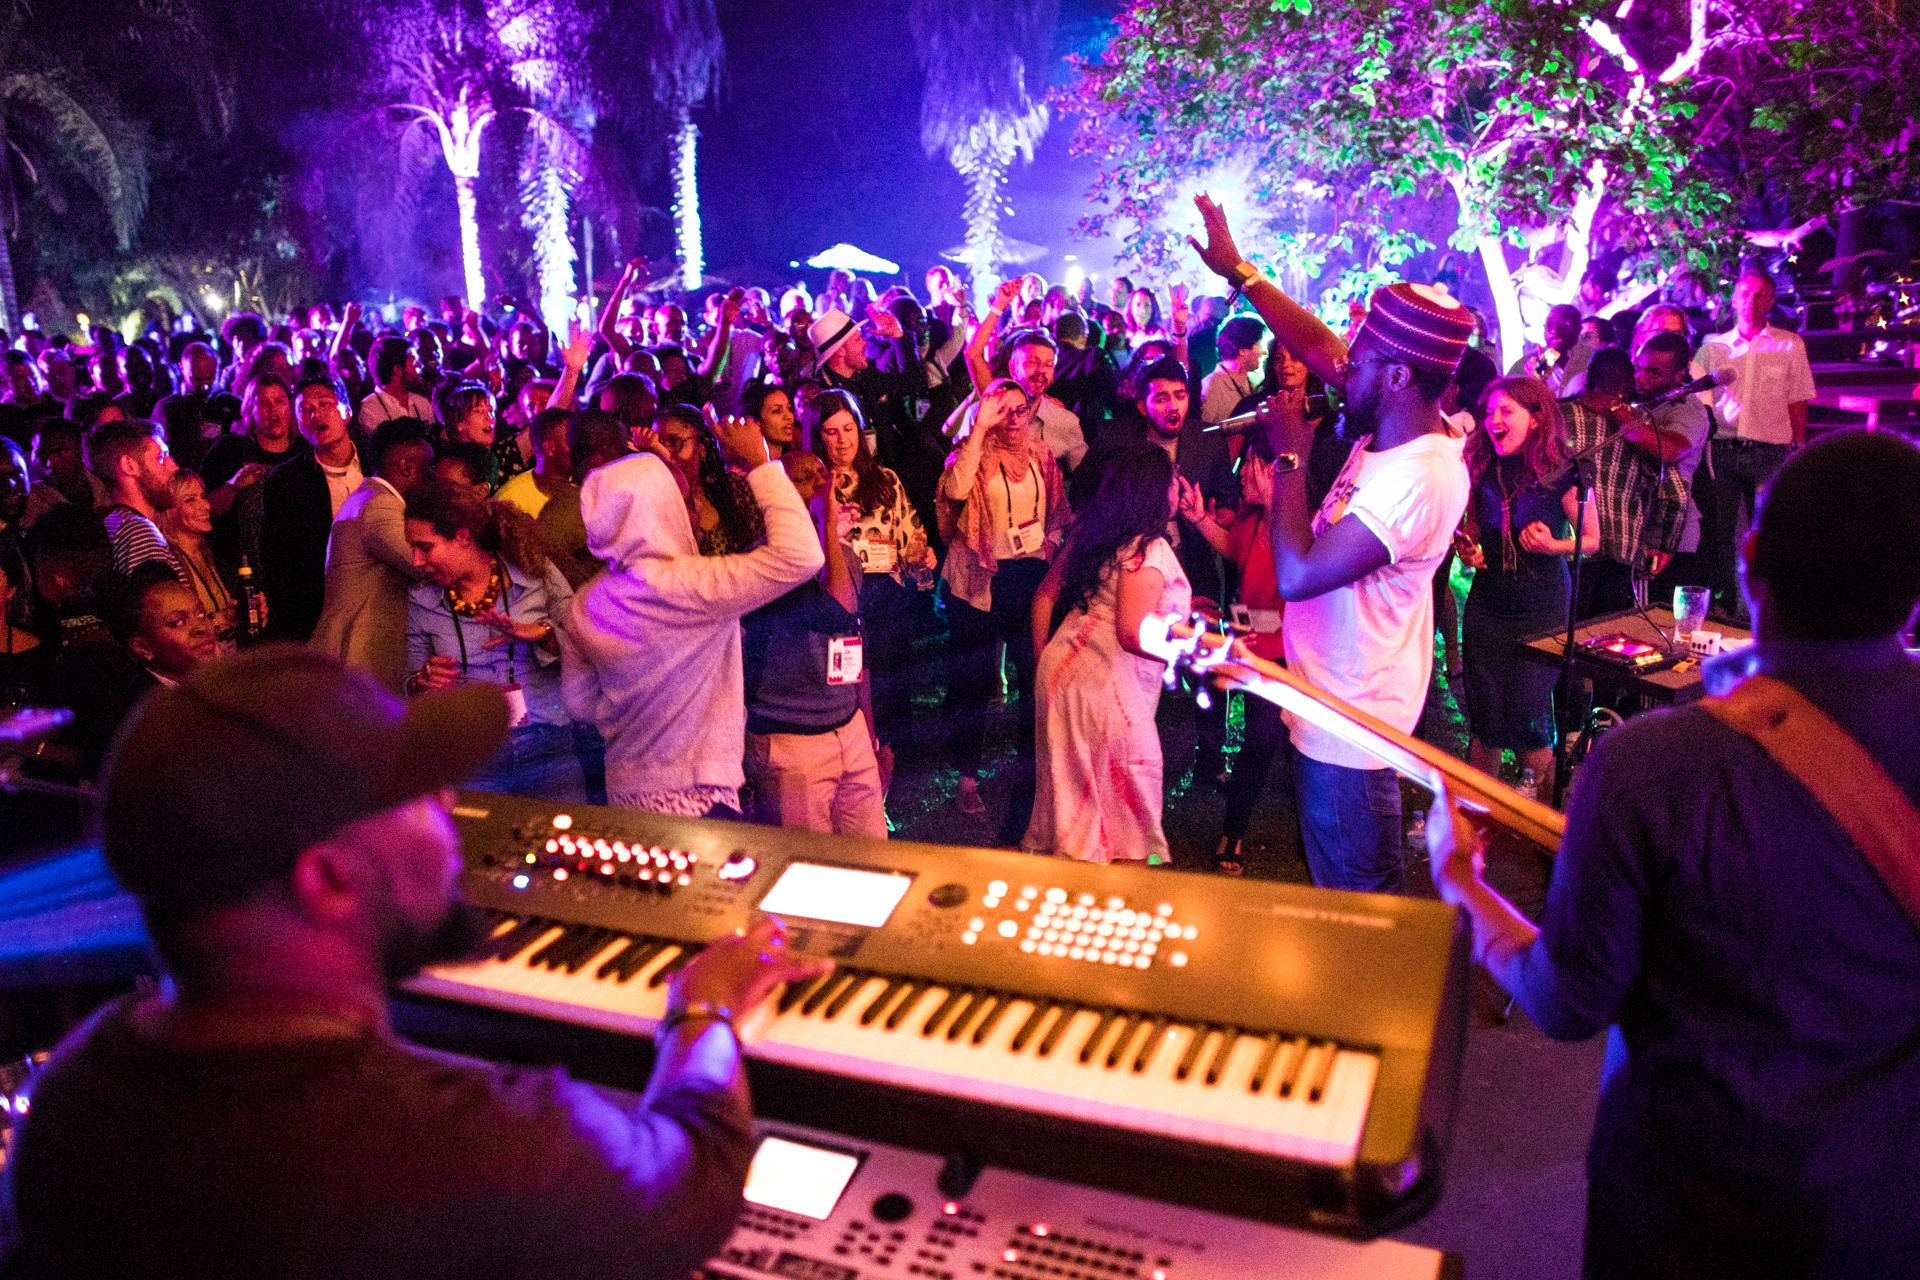 Blinky Bill Sellanga performing at the Farewell Party at TEDGlobal 2017 - Builders, Truth Tellers, Catalysts - August 27-30, 2017, Arusha, Tanzania. Photo: Ryan Lash / TED